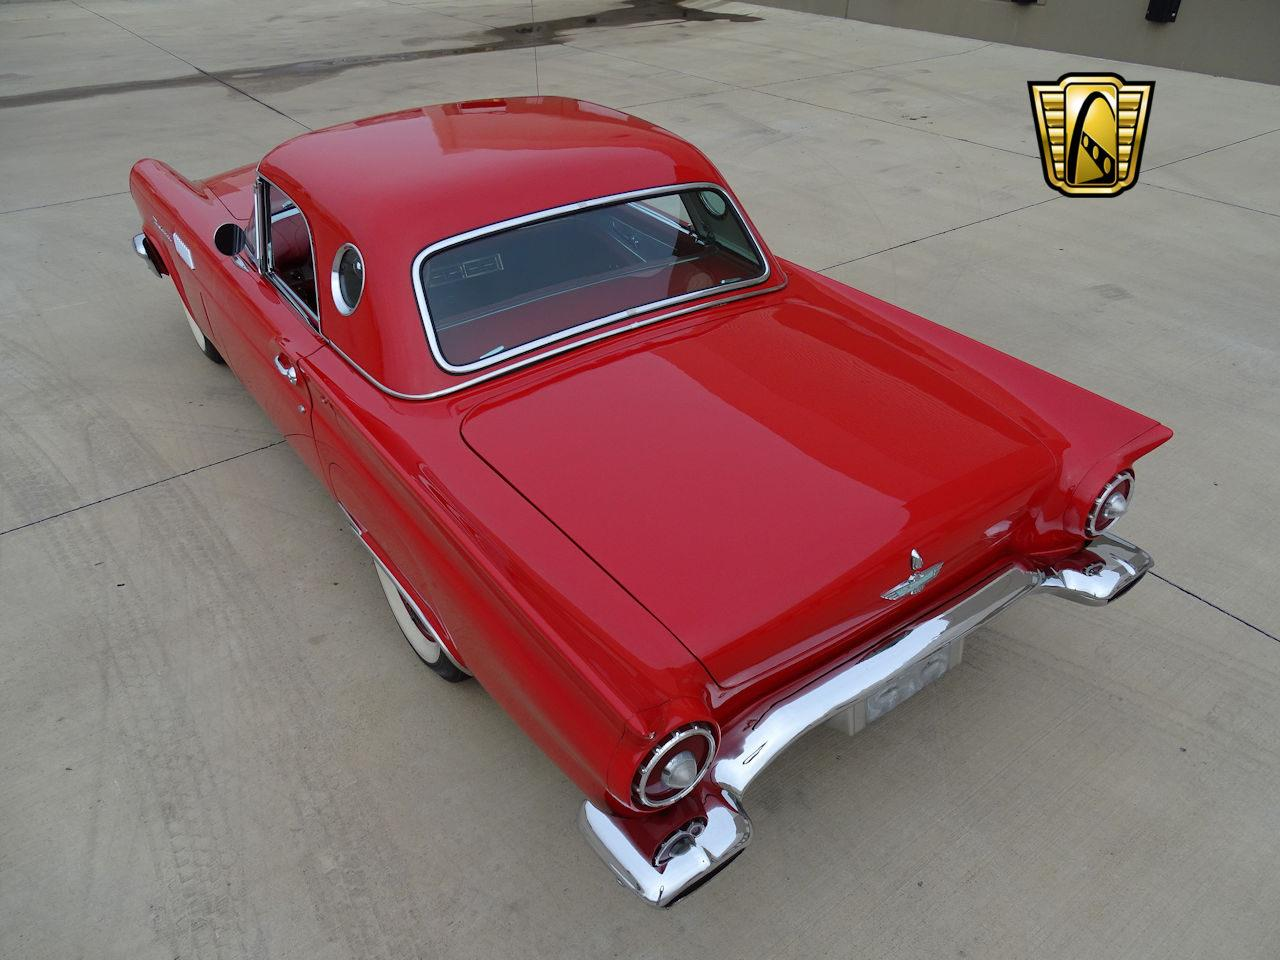 Large Picture of 1957 Ford Thunderbird located in Texas - $35,995.00 - MZF2